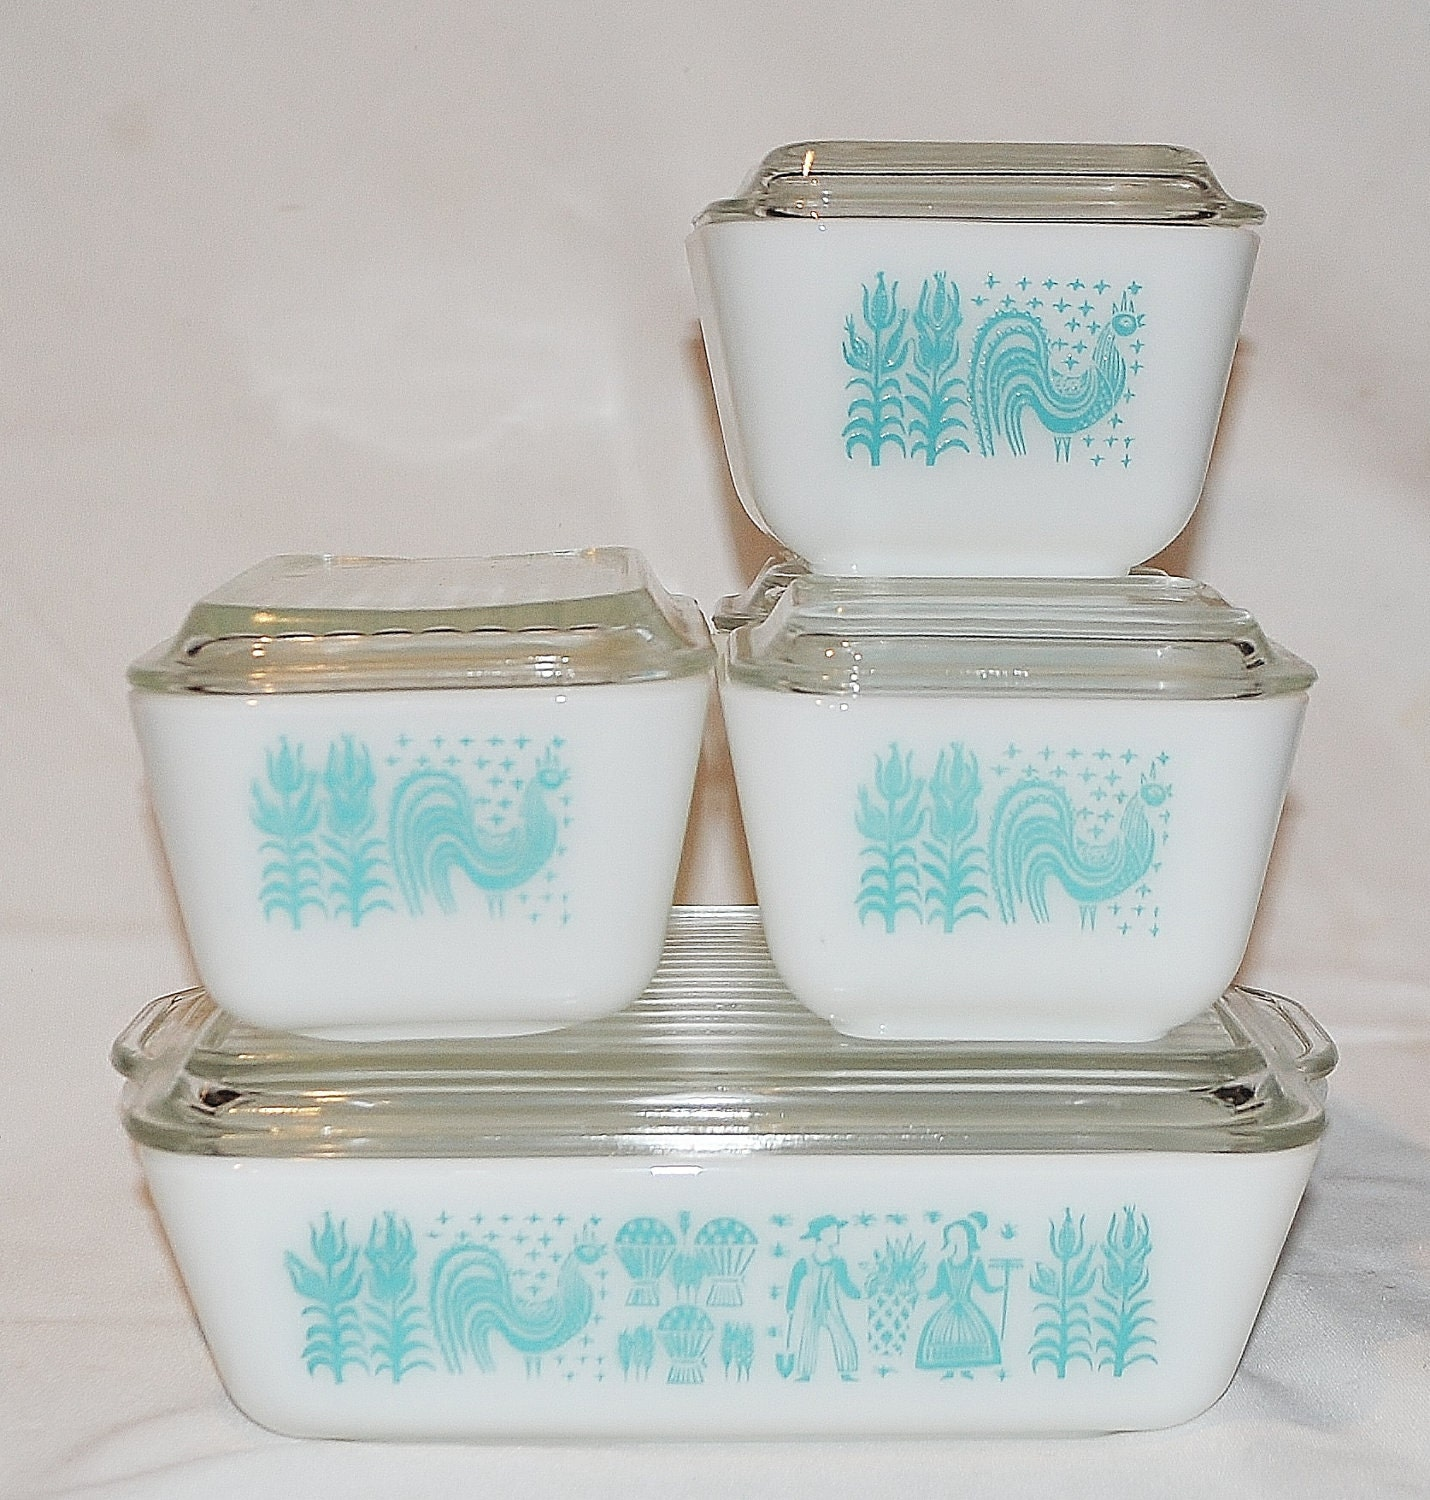 1950's Pyrex Refrigerator Dishes Set Of 5 Amish